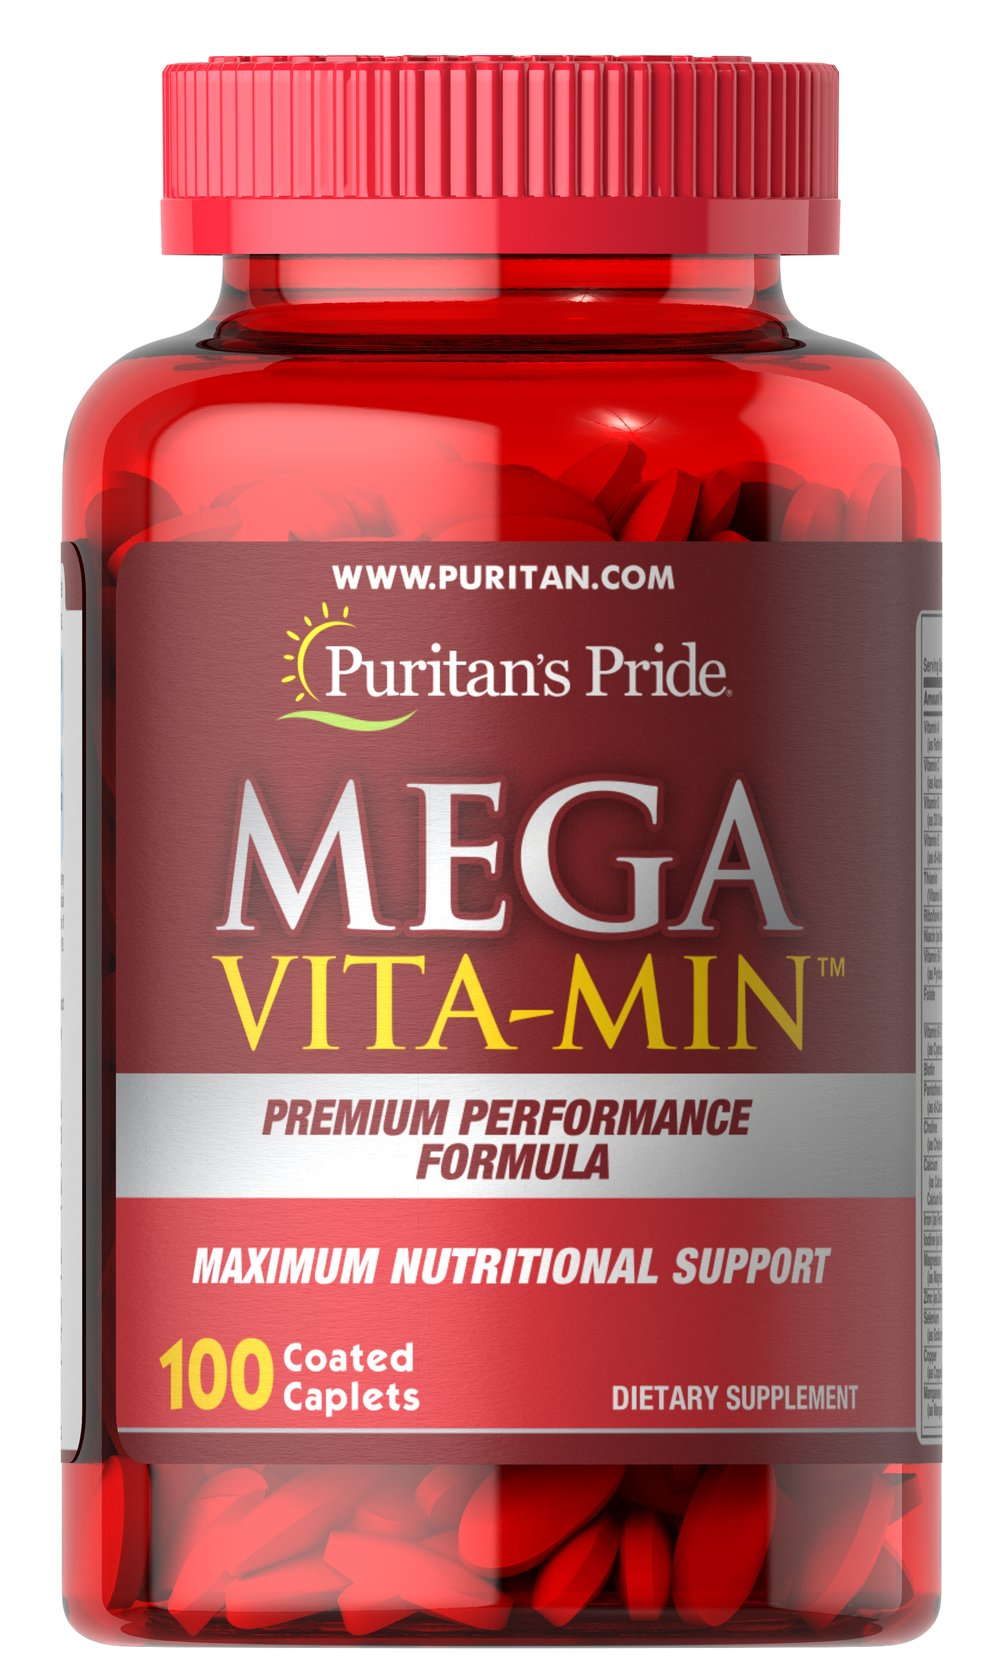 Mega Vita-Min™ Multivitamin <p>MEGA VITA-MIN™ takes the guesswork out of essential vitamin and mineral nutrition, with many active ingredients, including B Vitamins for energy metabolism, and an array of immune and antioxidant support vitamins such as C and E.**</p> 100 Caplets  $26.99